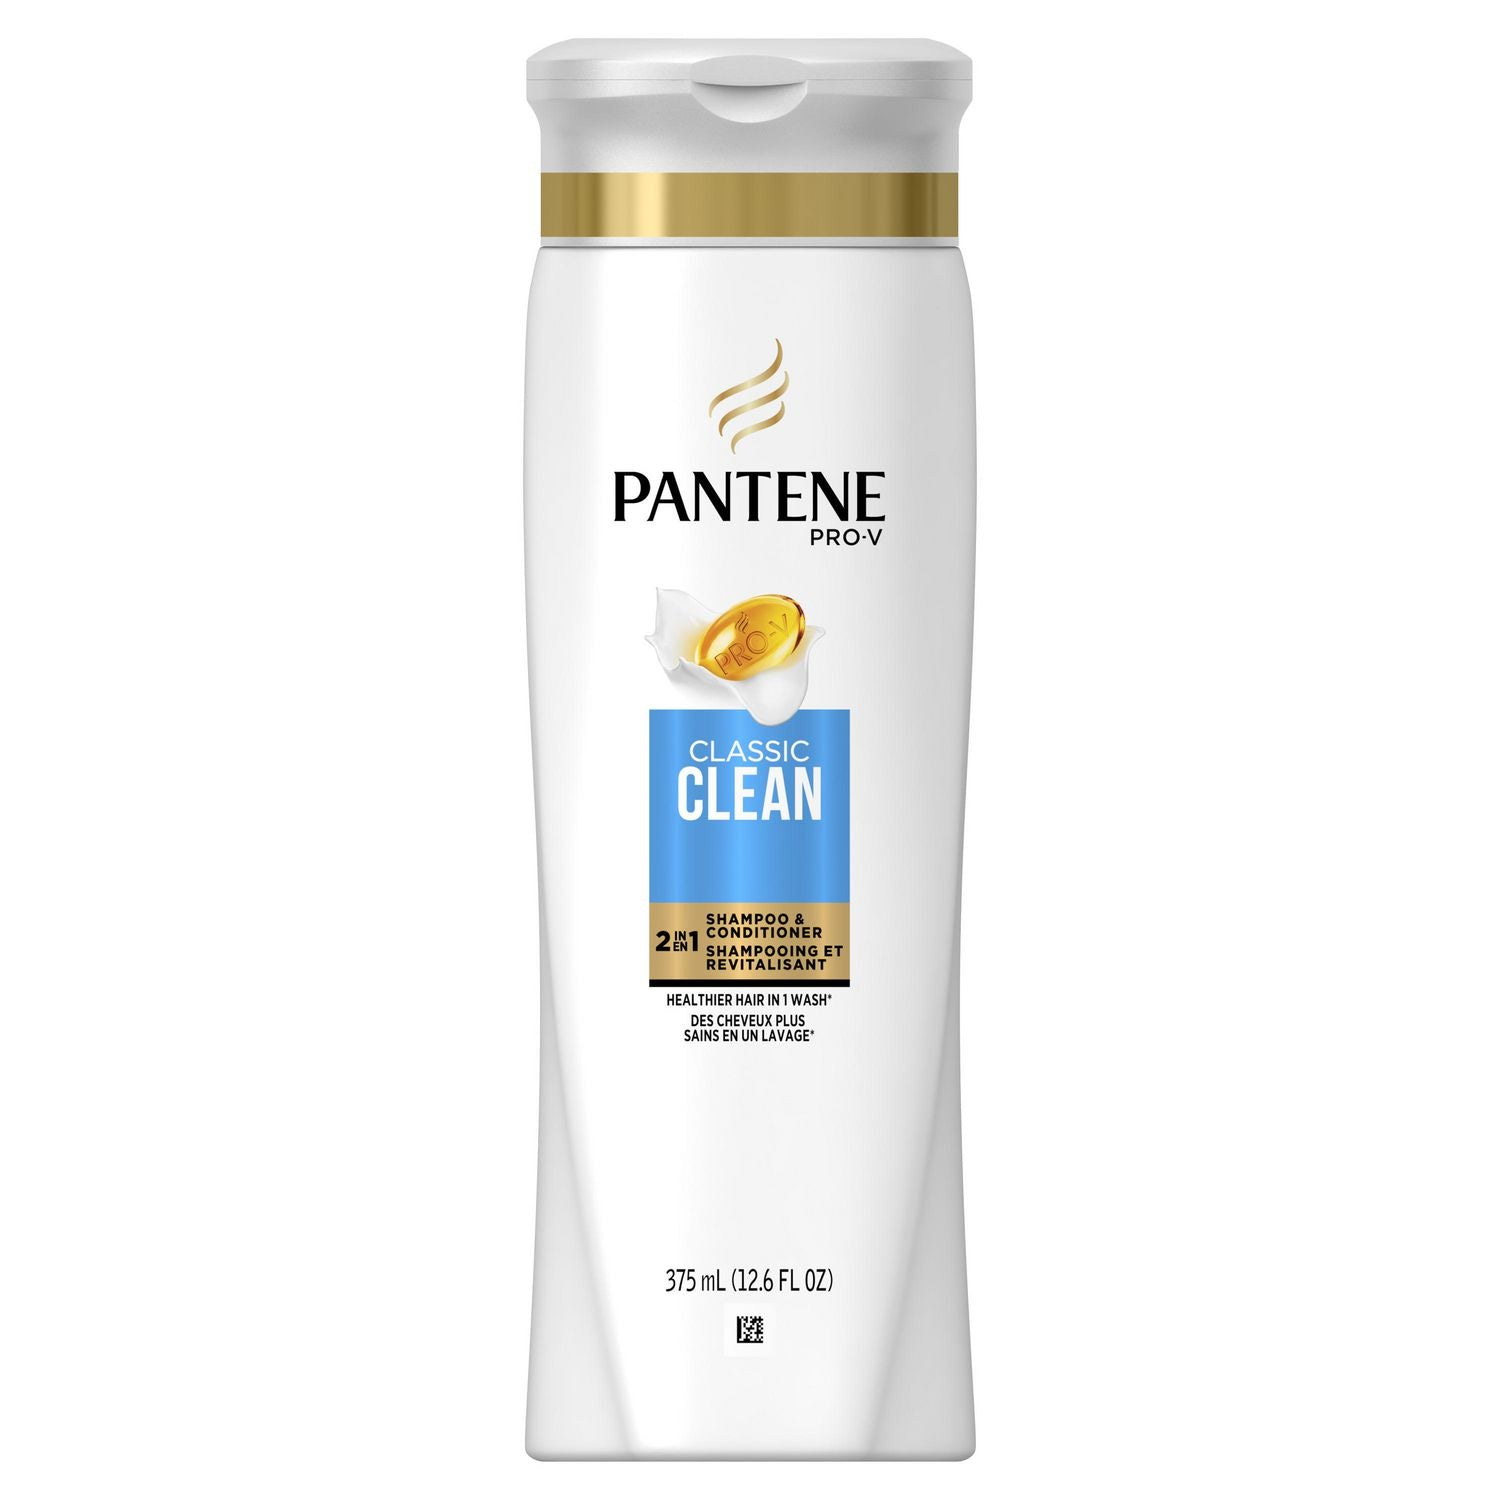 Pantene Pro-V Classic Clean 2in1 Shampoo & Conditioner 375mL